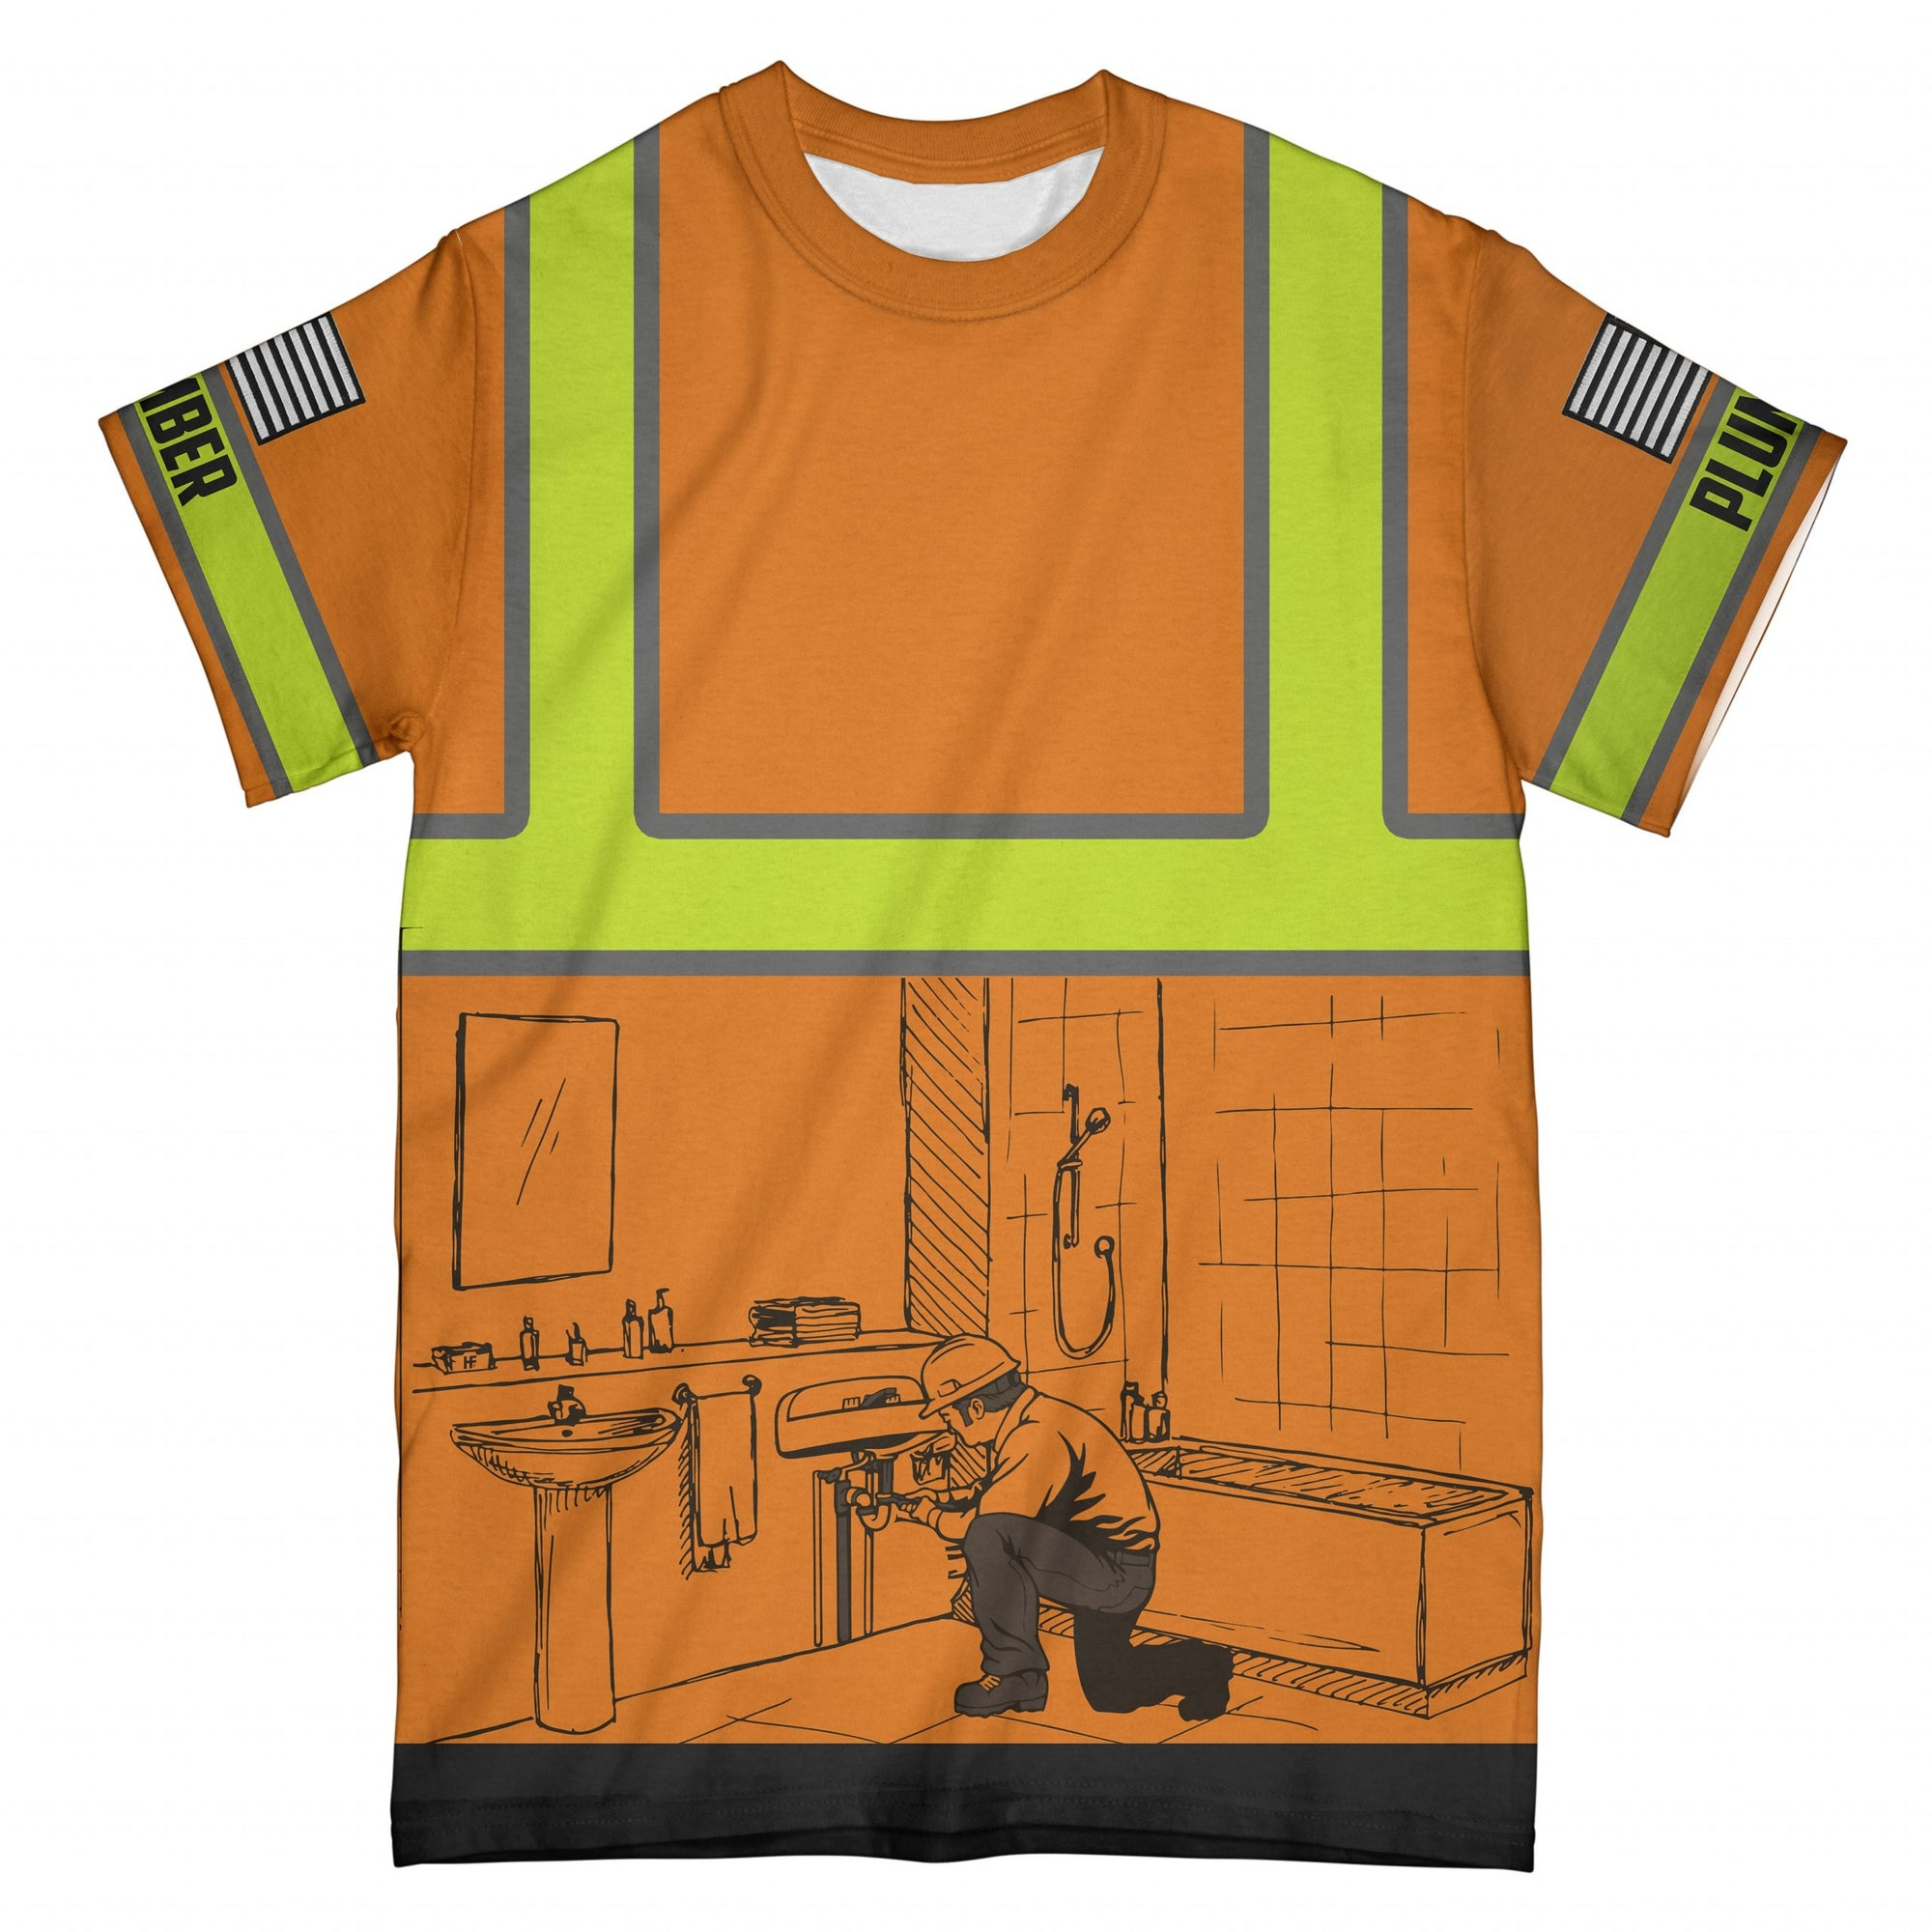 Plumber EZ10 1808 All Over T-Shirt - Hyperfavor